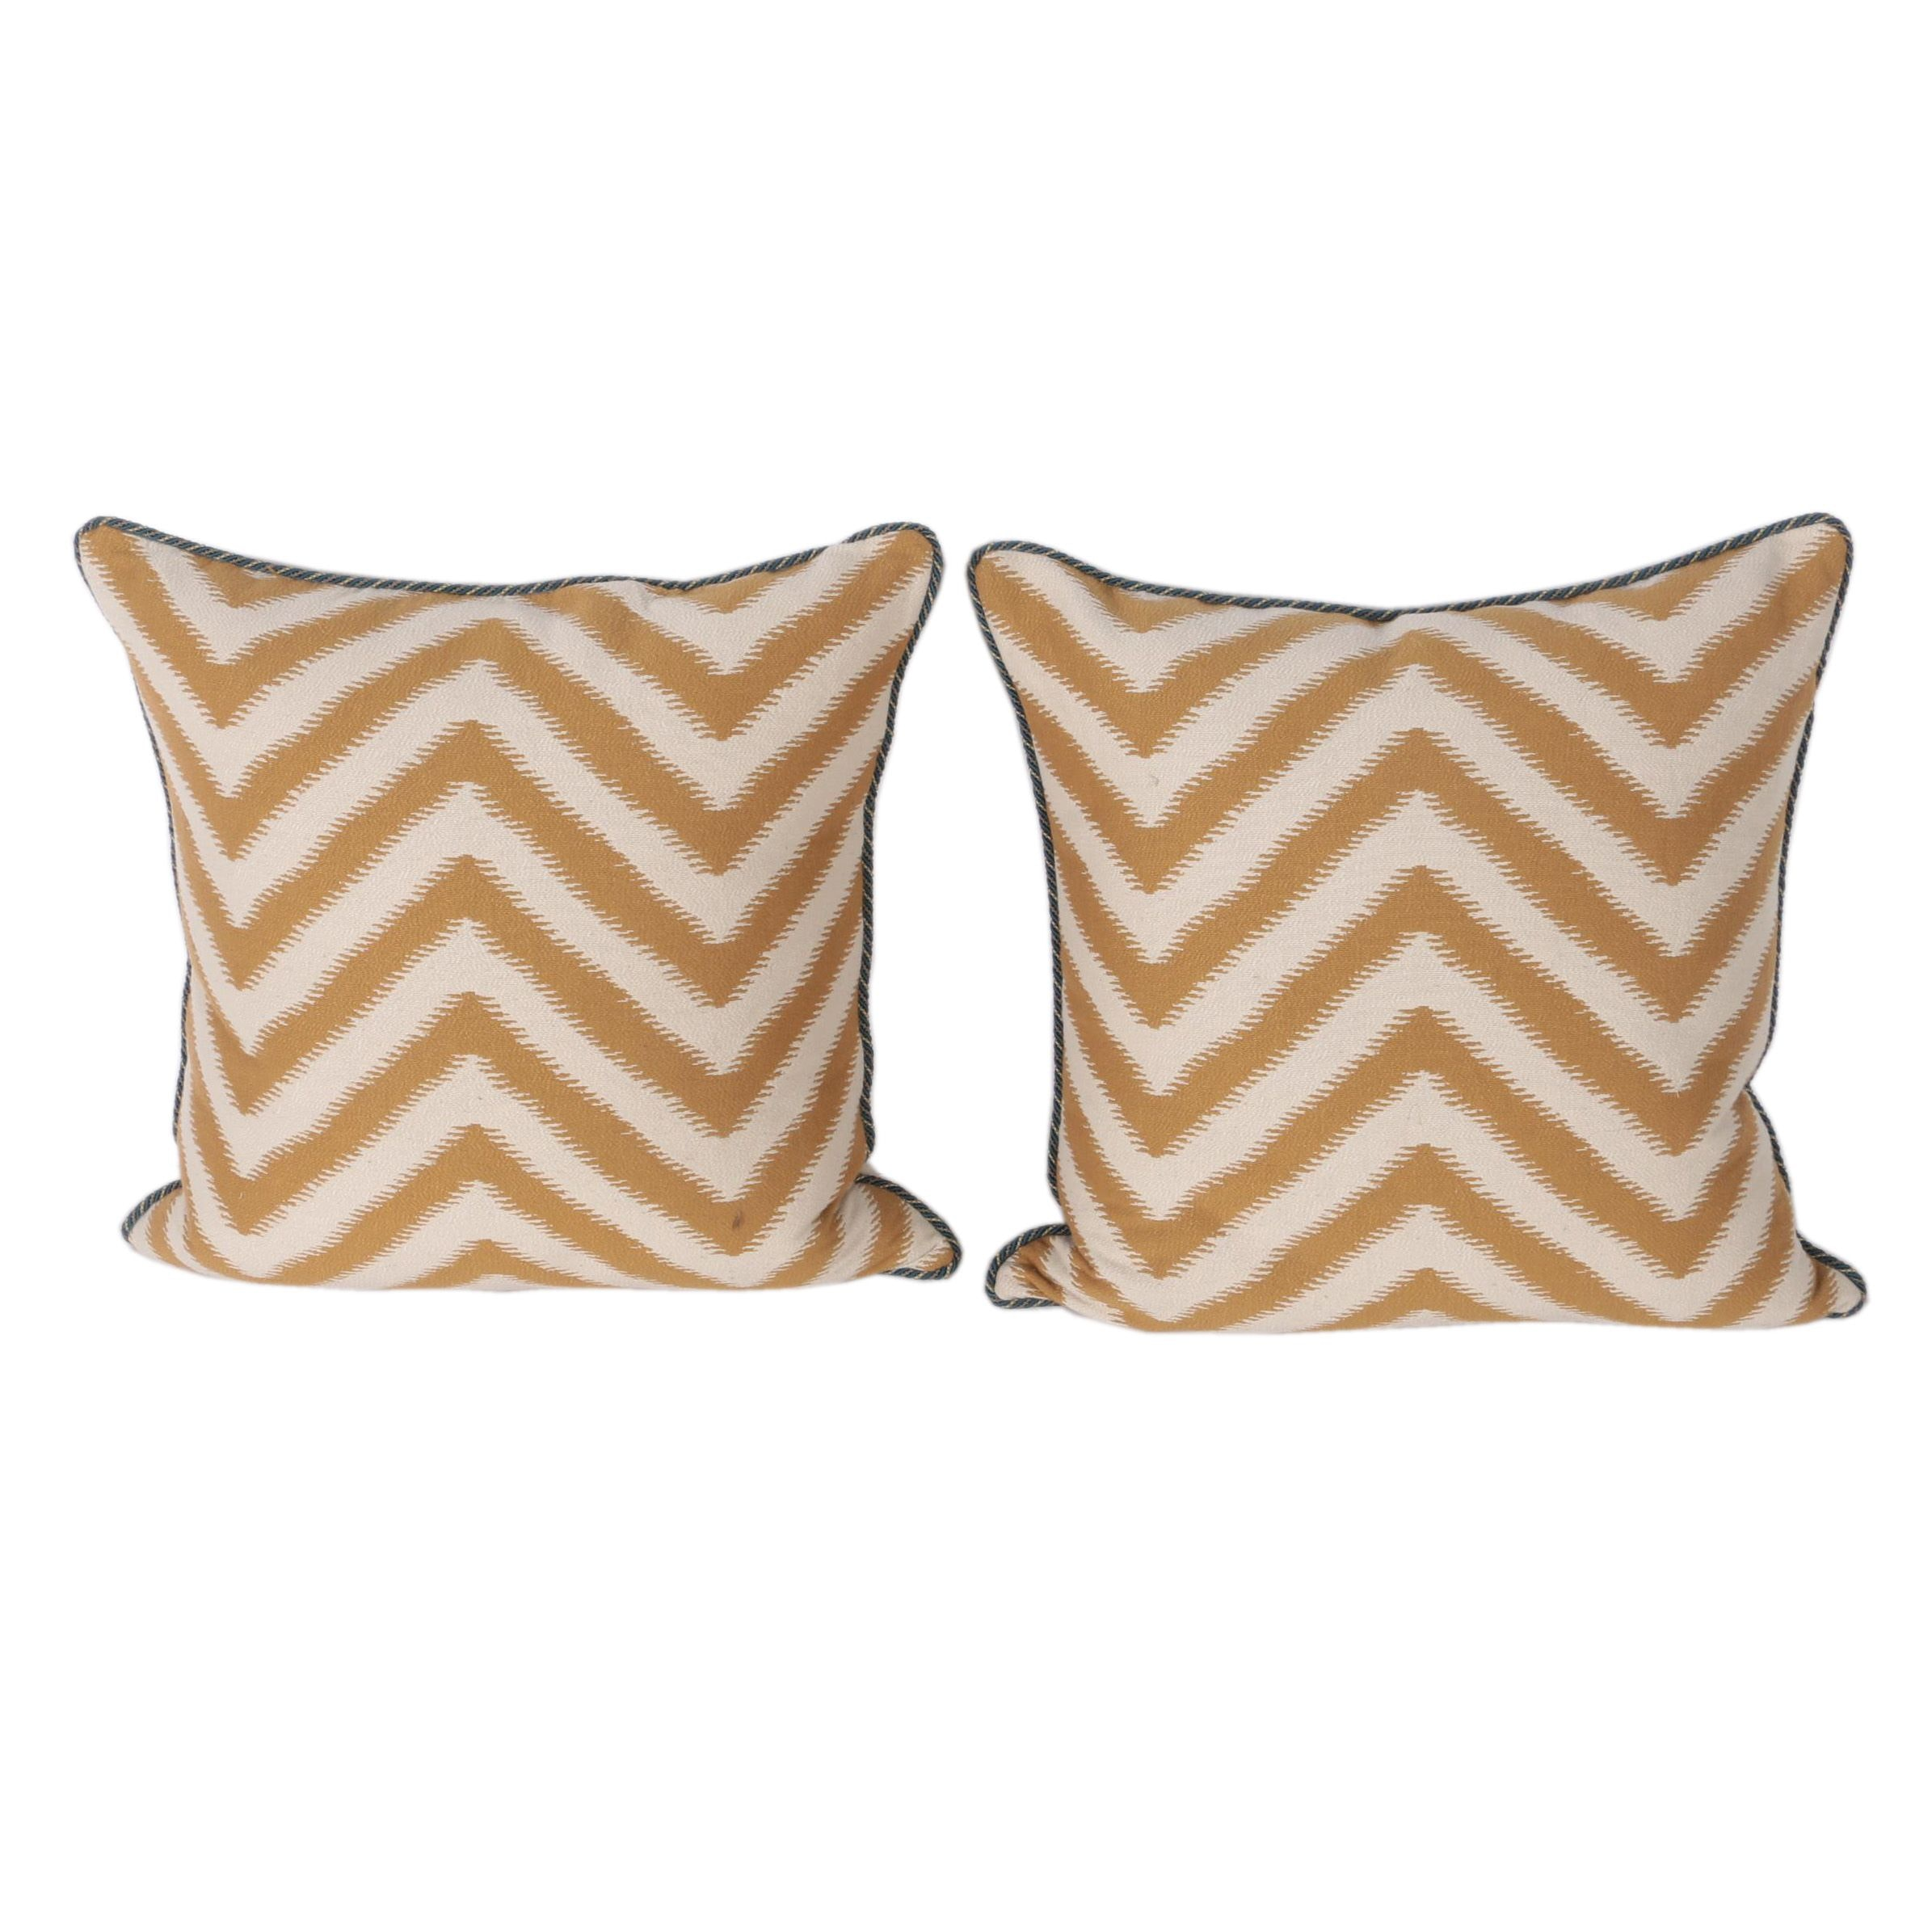 Gold Tone and White Accent Pillows